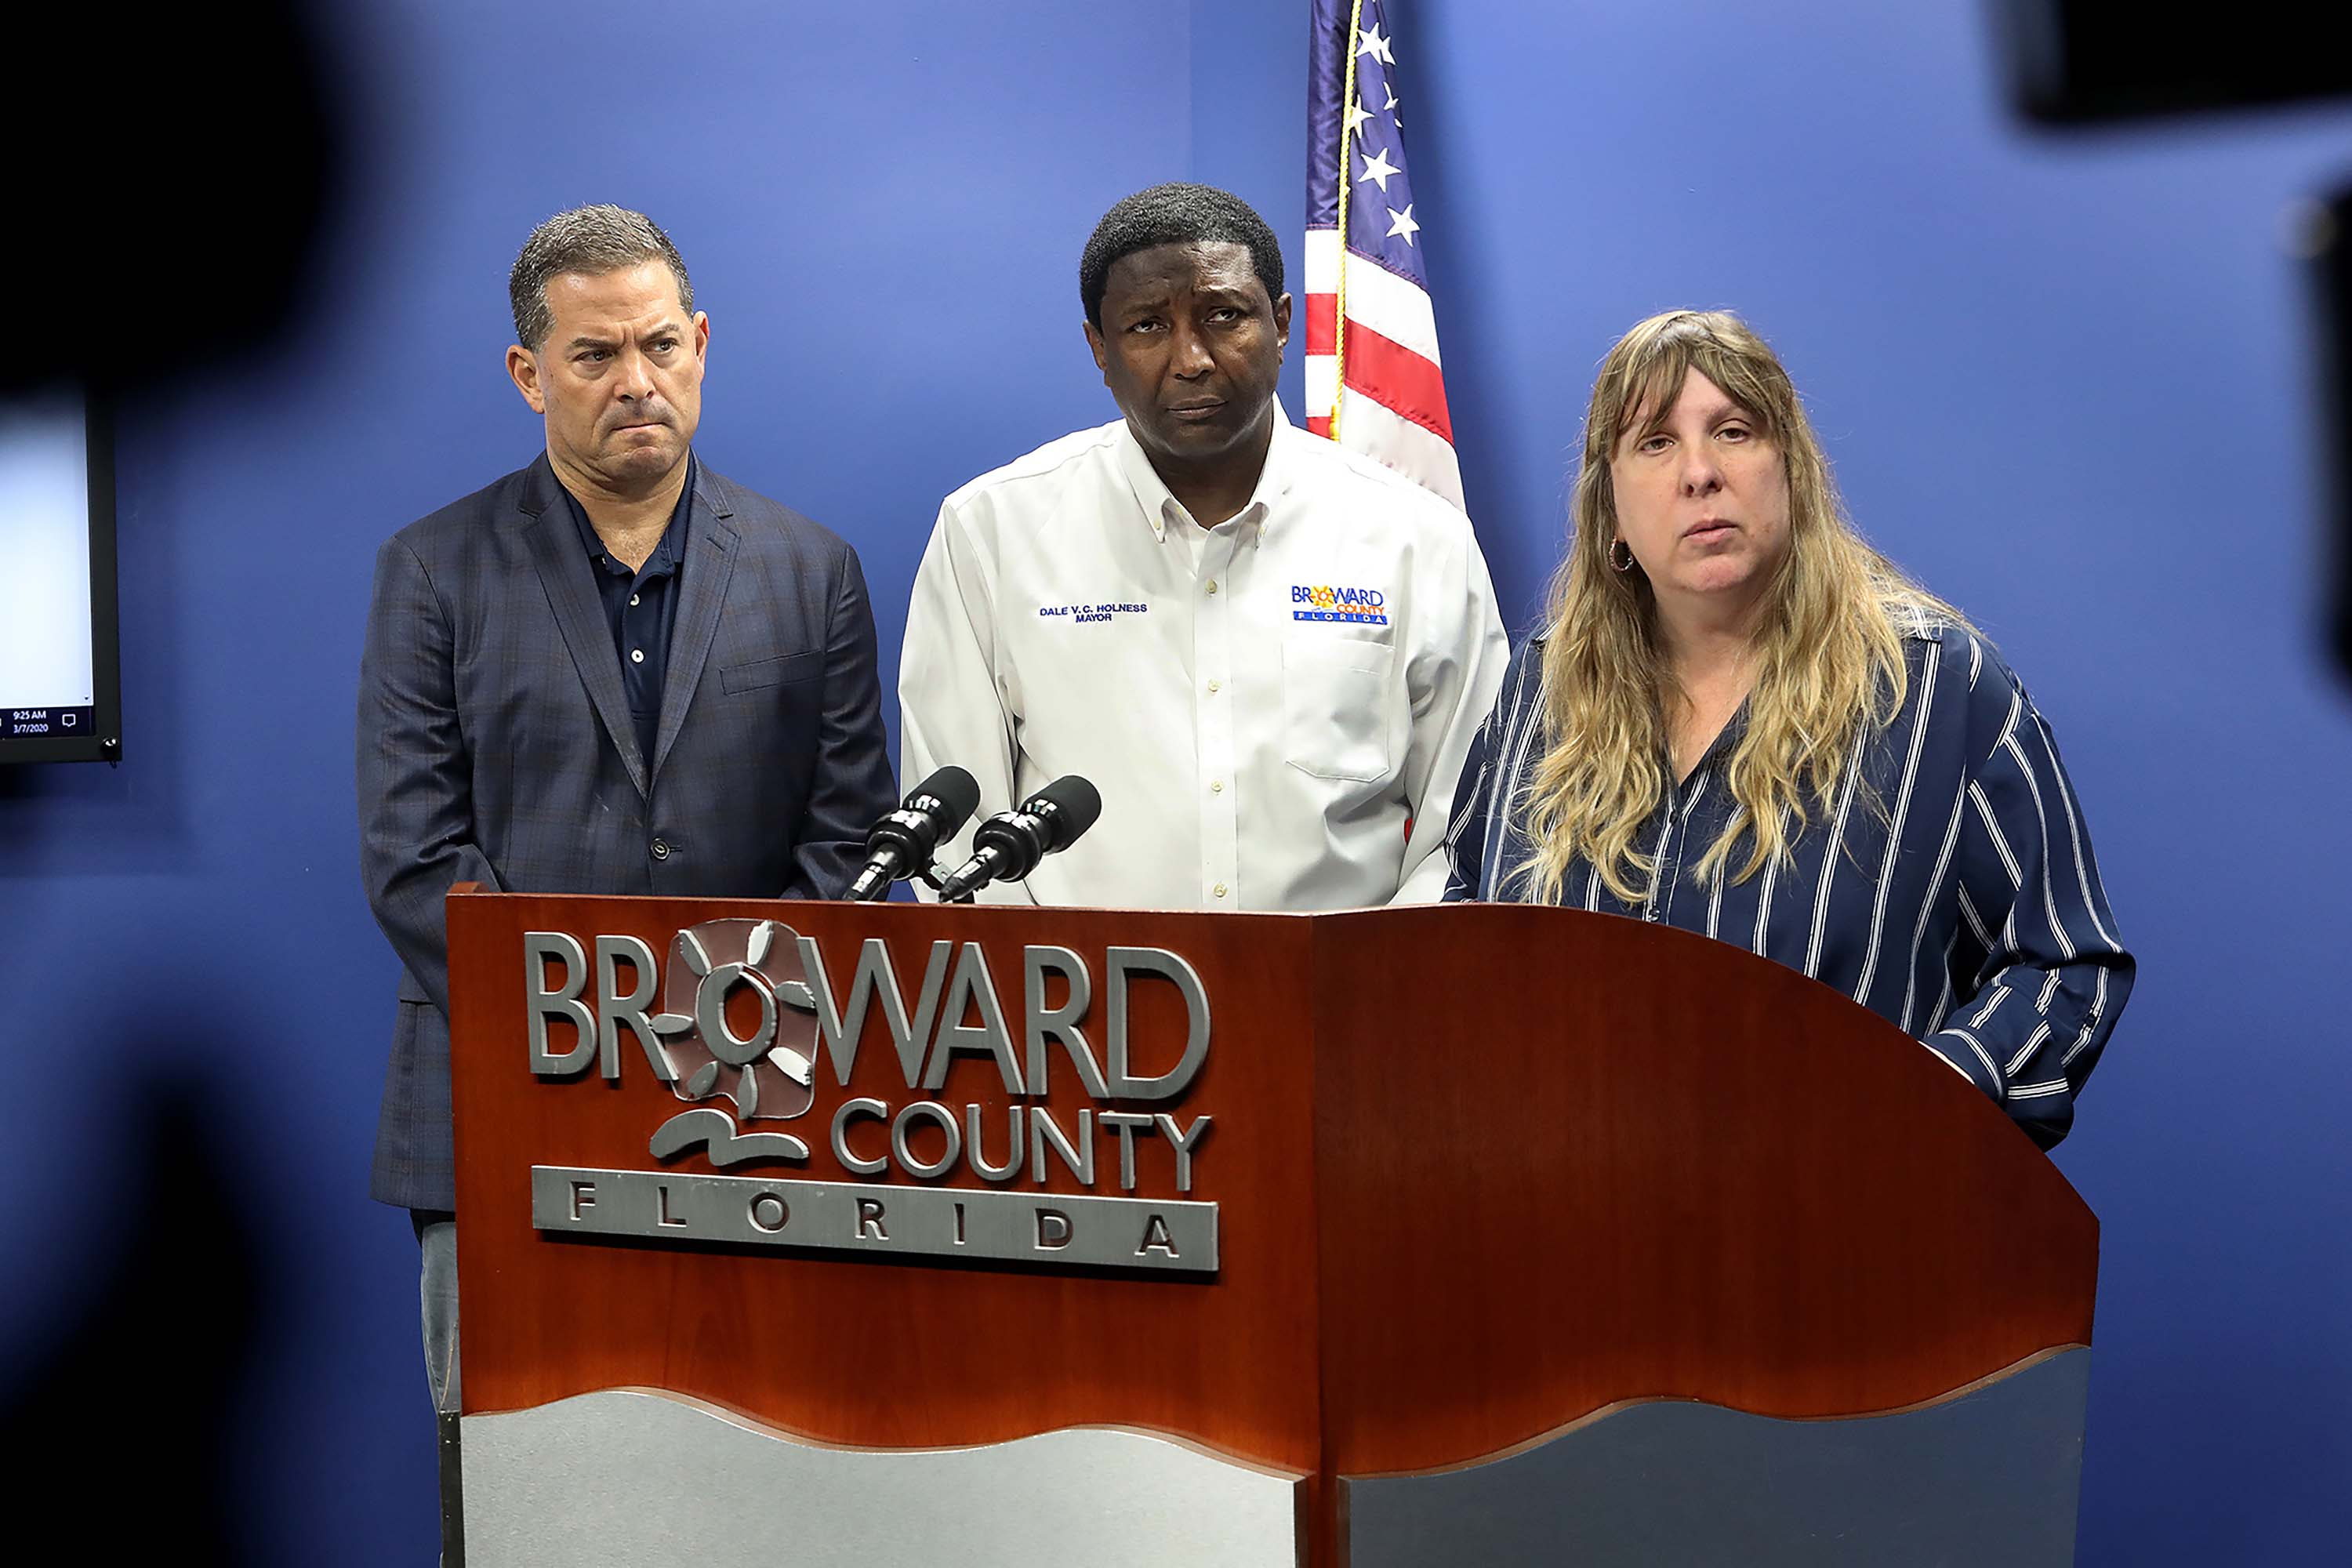 Broward County commissioner Michael Udine, Mayor Dale V.C. Holness, and Dr. Paula Thaqi, Director of the Florida Department of Health in Broward County take questions from the media about coronavirus cases in Plantation, Florida, on March 7.